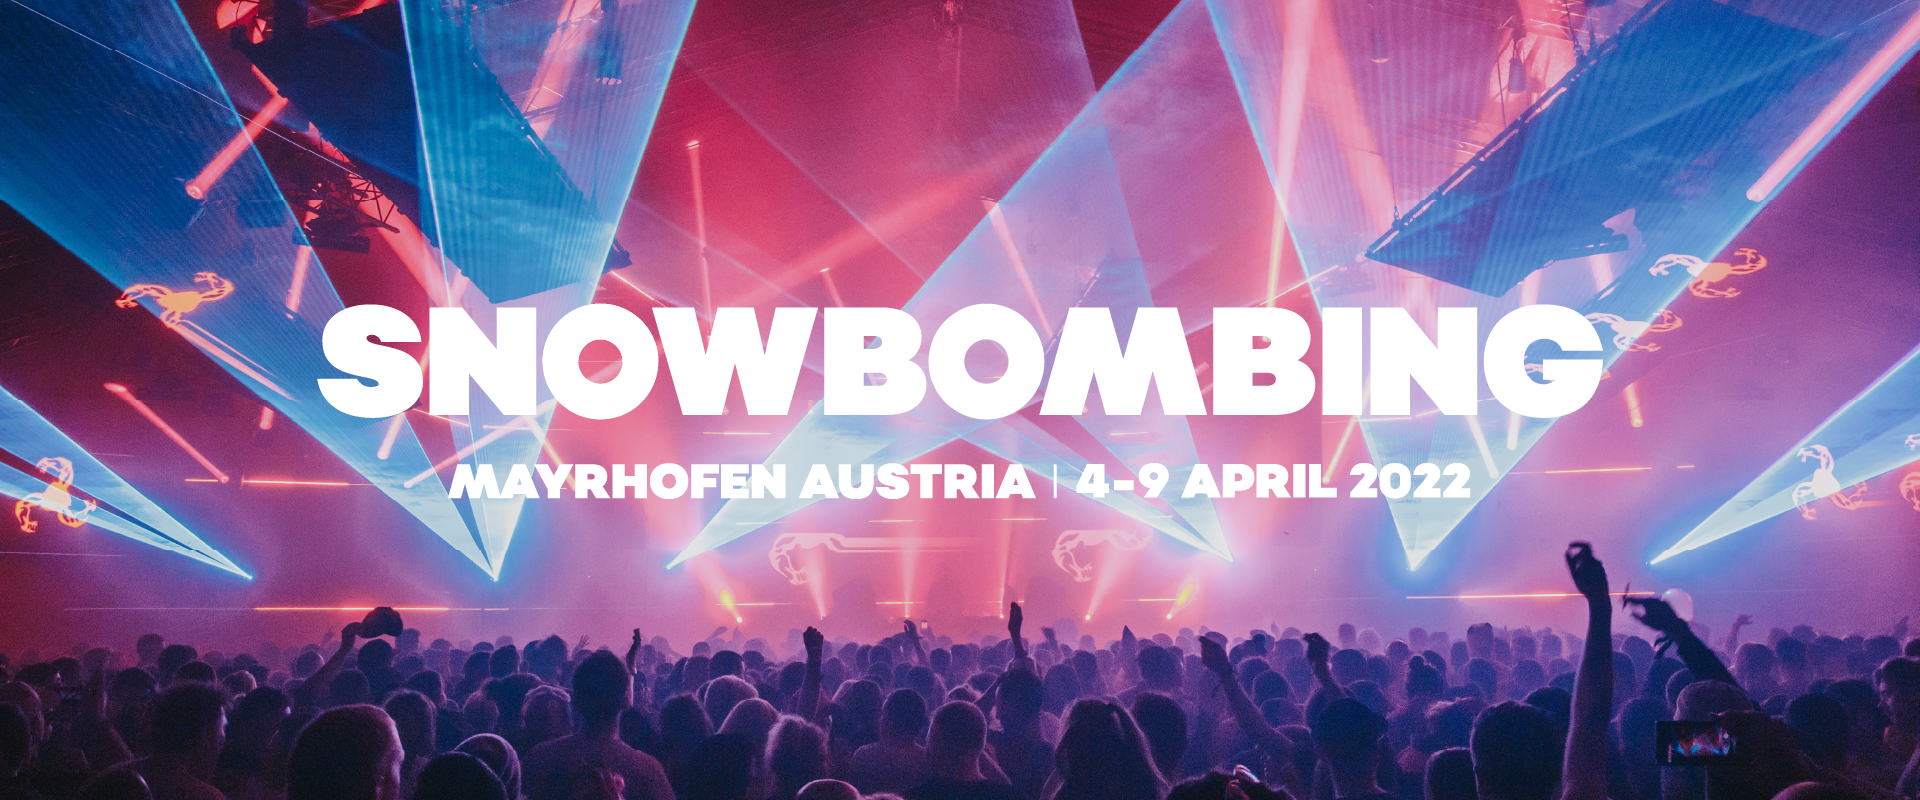 Snowbombing: First SB22 acts announced! 1